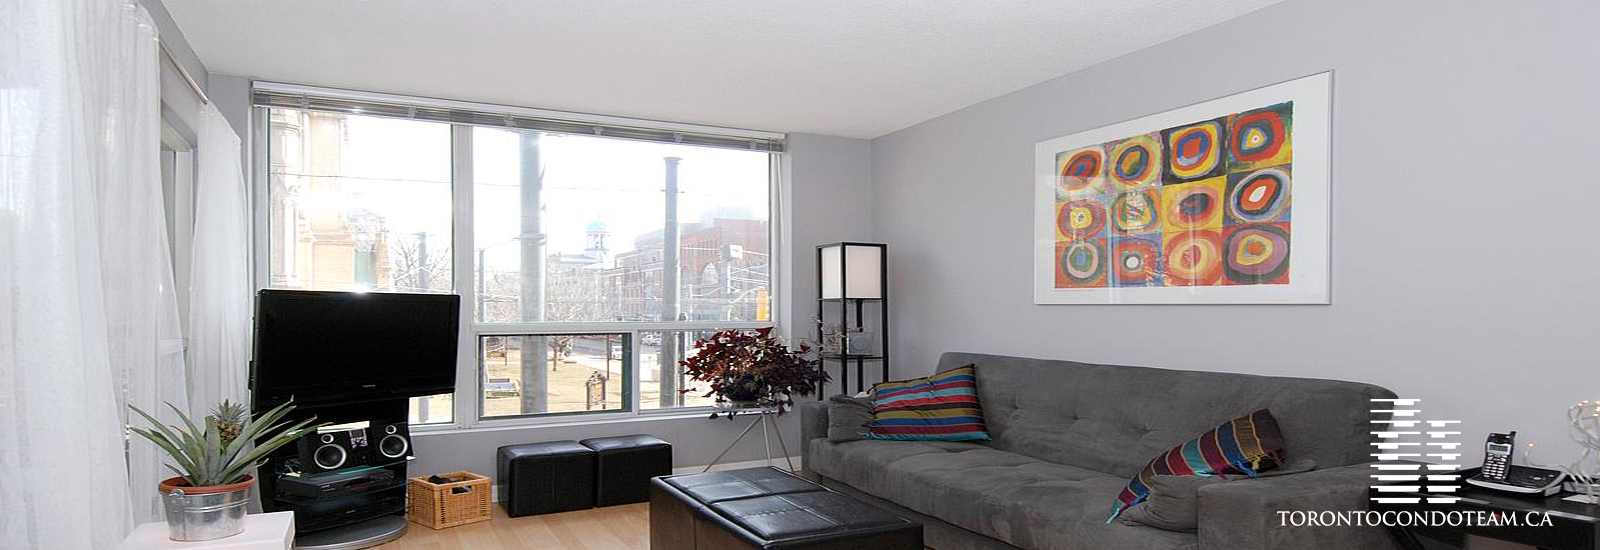 92 King Street East Condos For Sale